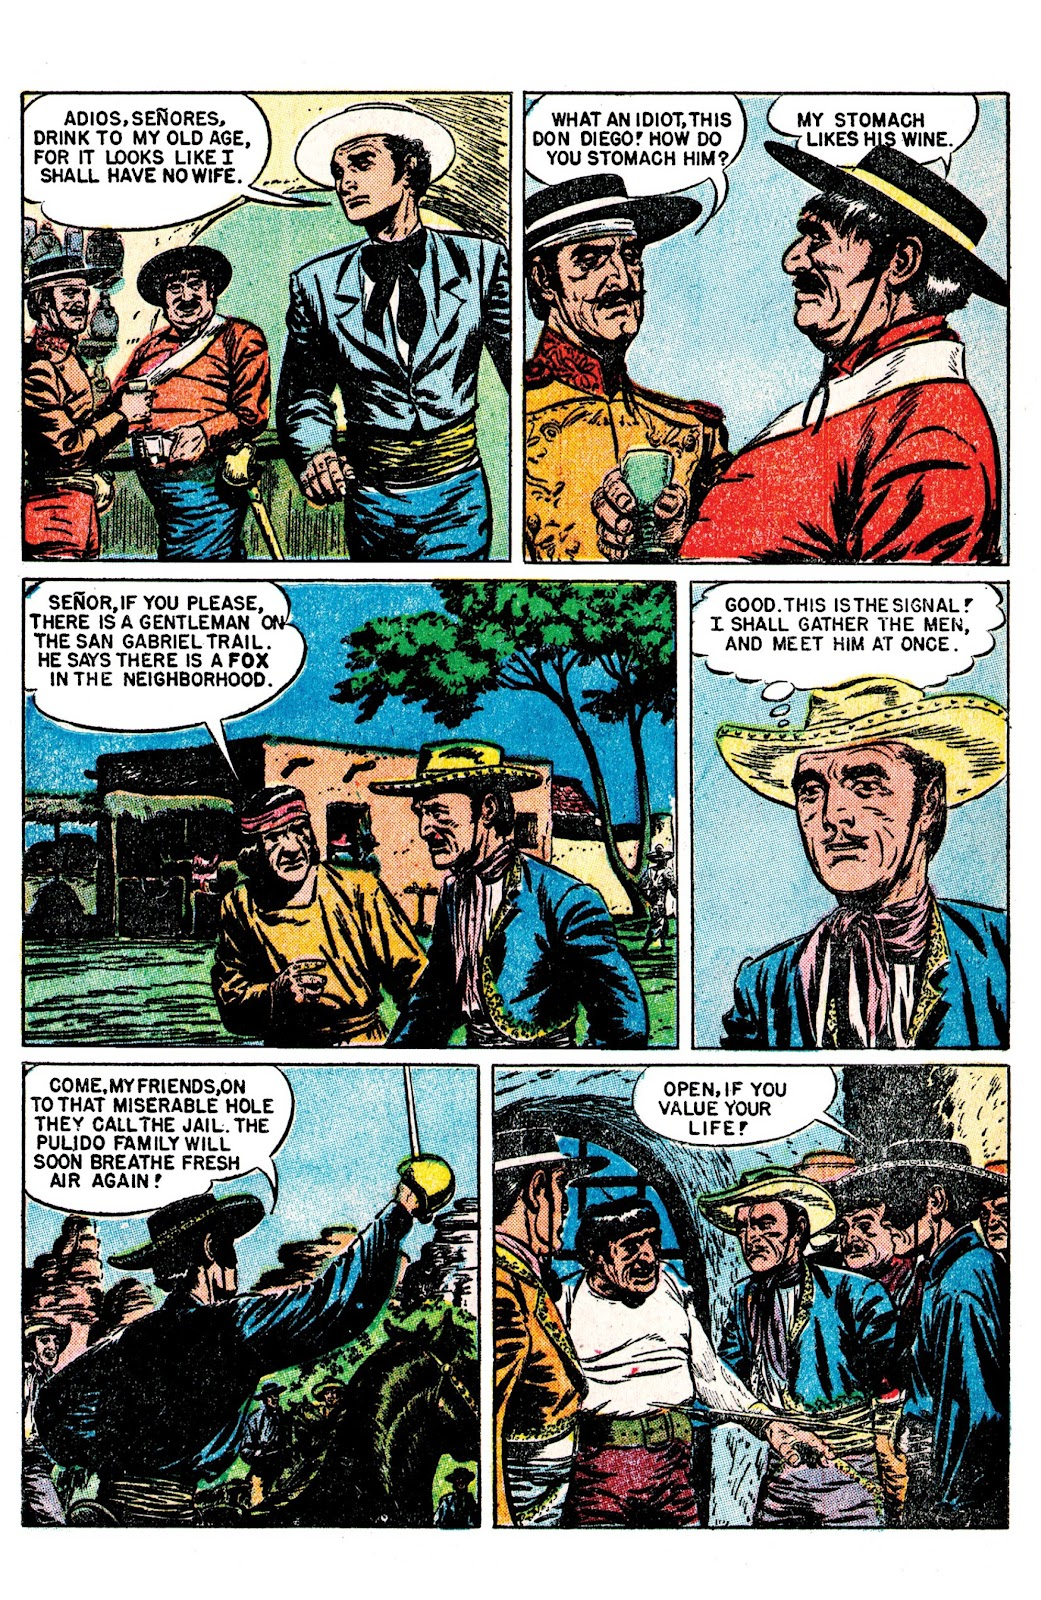 Read online AM Archives: The Mark of Zorro #1 1949 Dell Edition comic -  Issue #1 1949 Dell Edition Full - 28